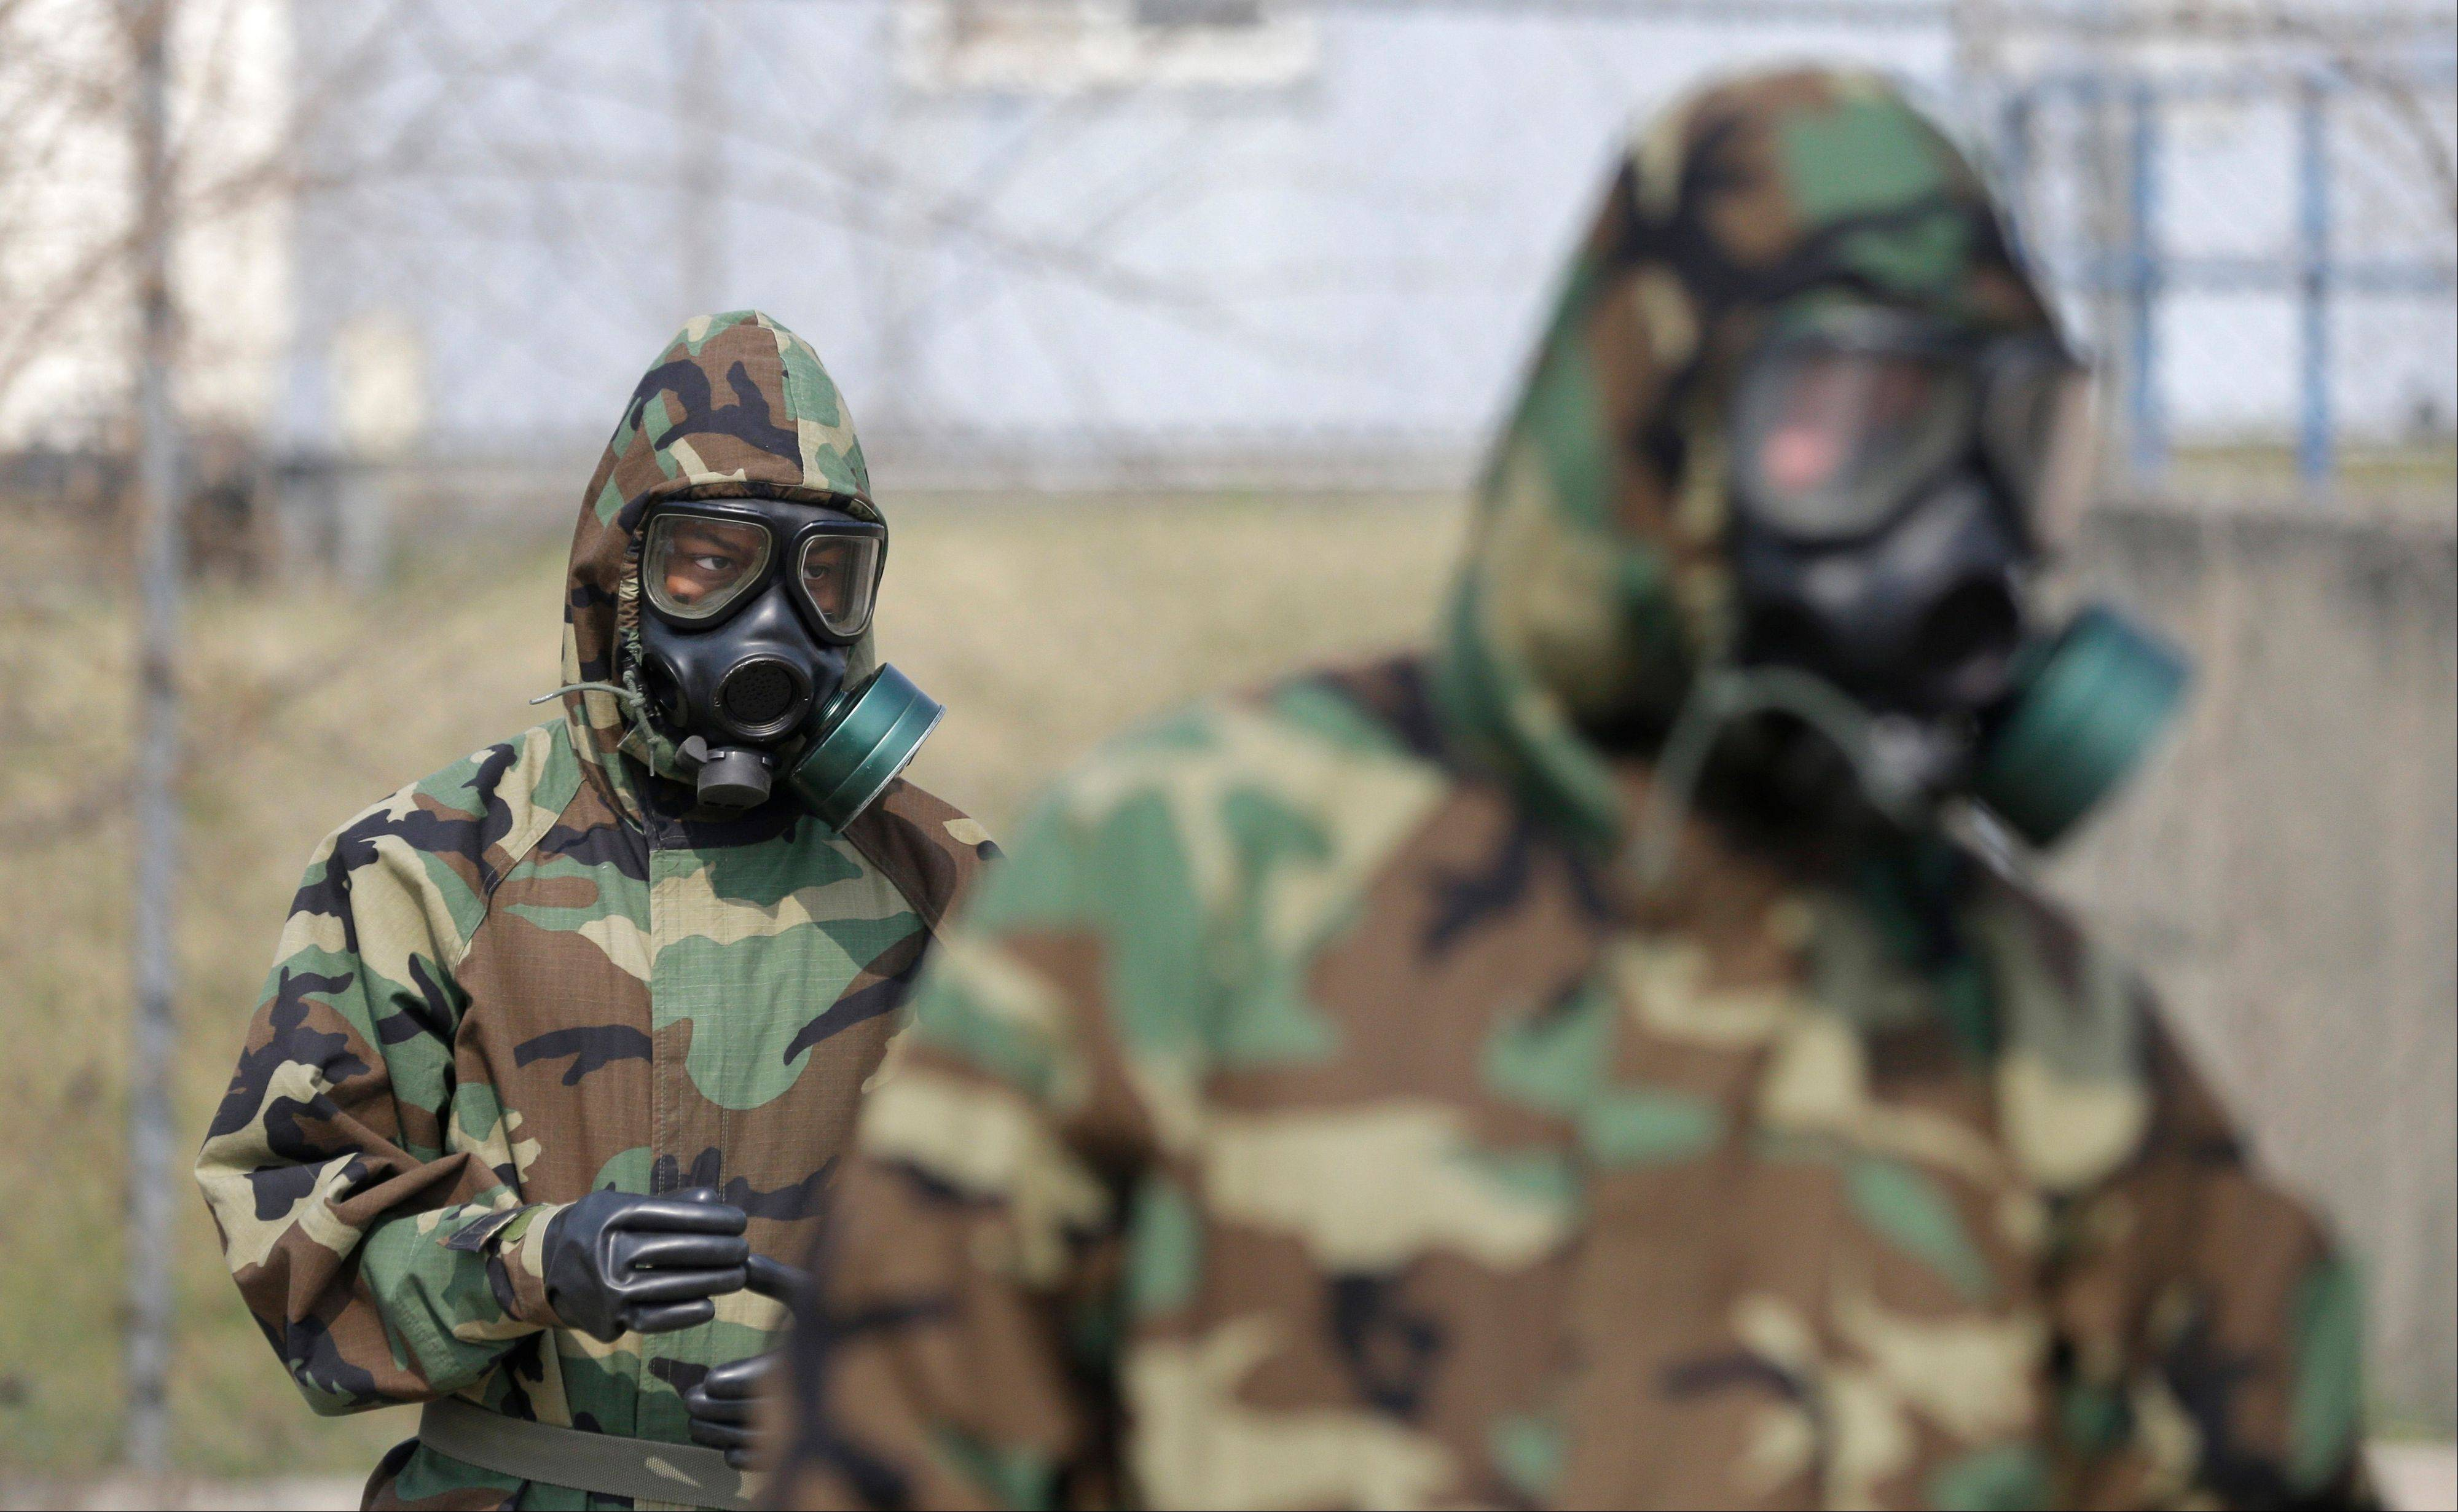 Soldiers of the U.S. Army 23rd chemical battalion wear gas masks while attending a demonstration of their equipment during a ceremony to recognize the battalion's official return to the 2nd Infantry Division based in South Korea at Camp Stanley in Uijeongbu, north of Seoul, Thursday.